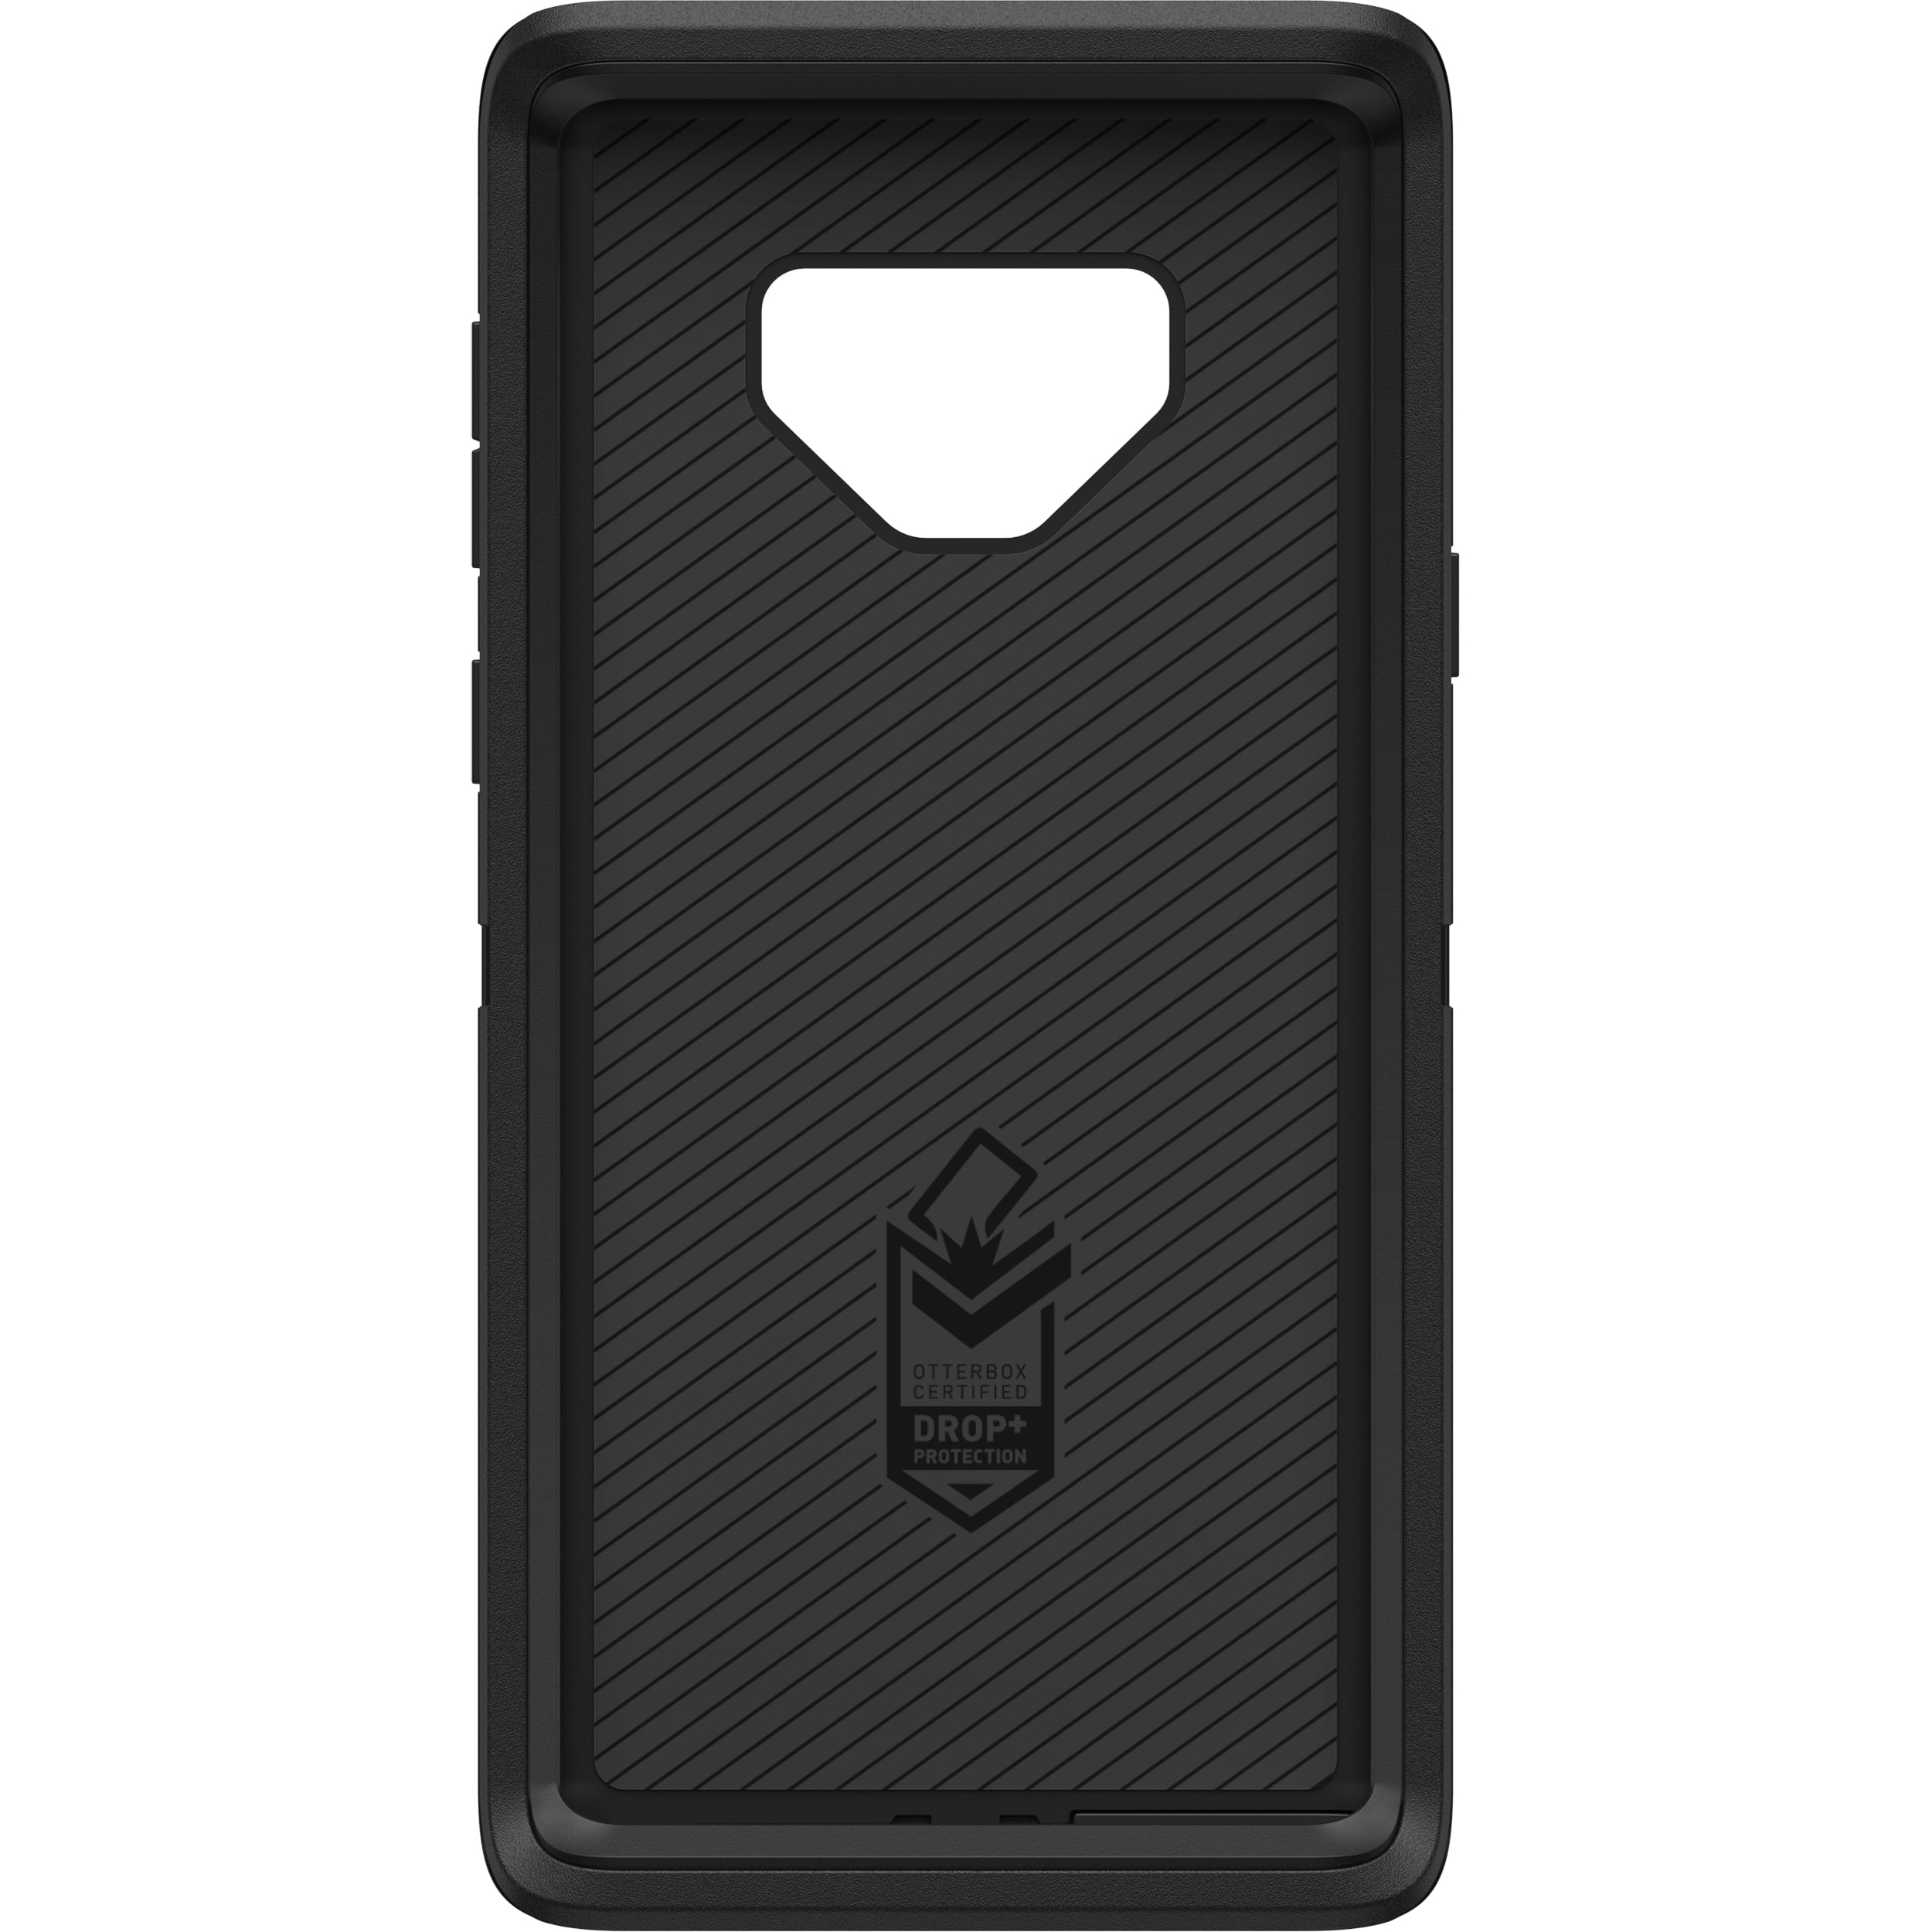 5215cfdbfb3 OtterBox Defender Series Case for Samsung Galaxy Note 9, Black ...